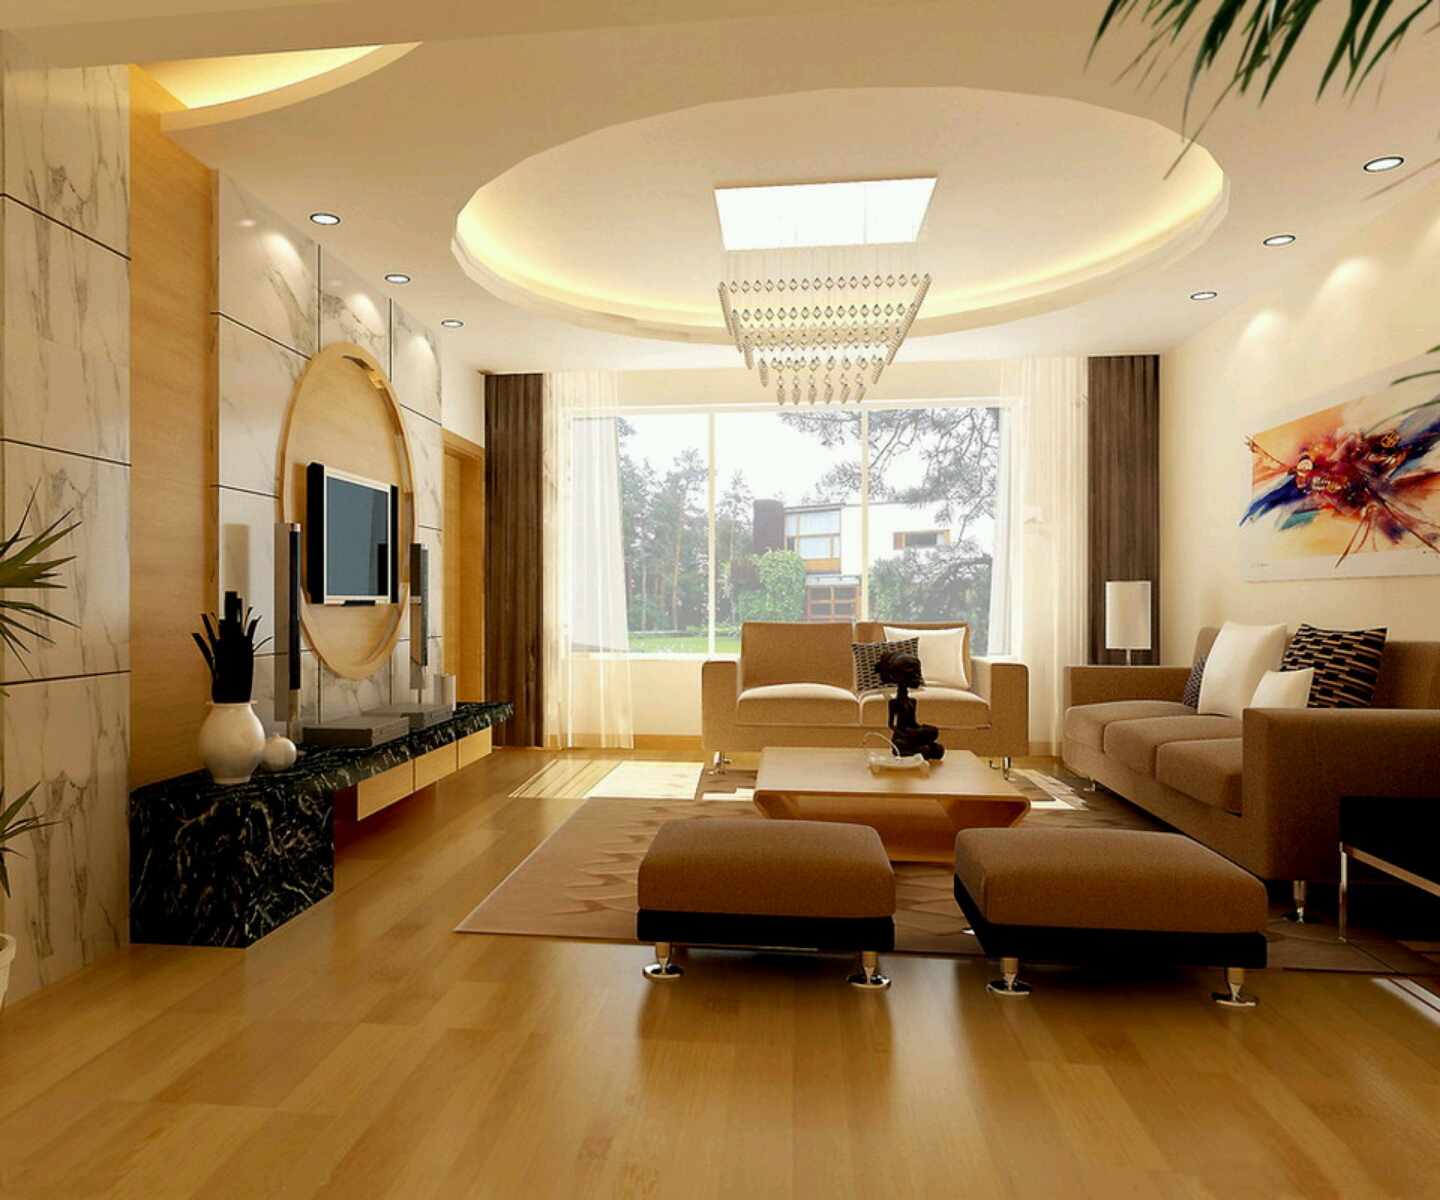 Modern interior decoration living rooms ceiling designs for Idea living room design interior